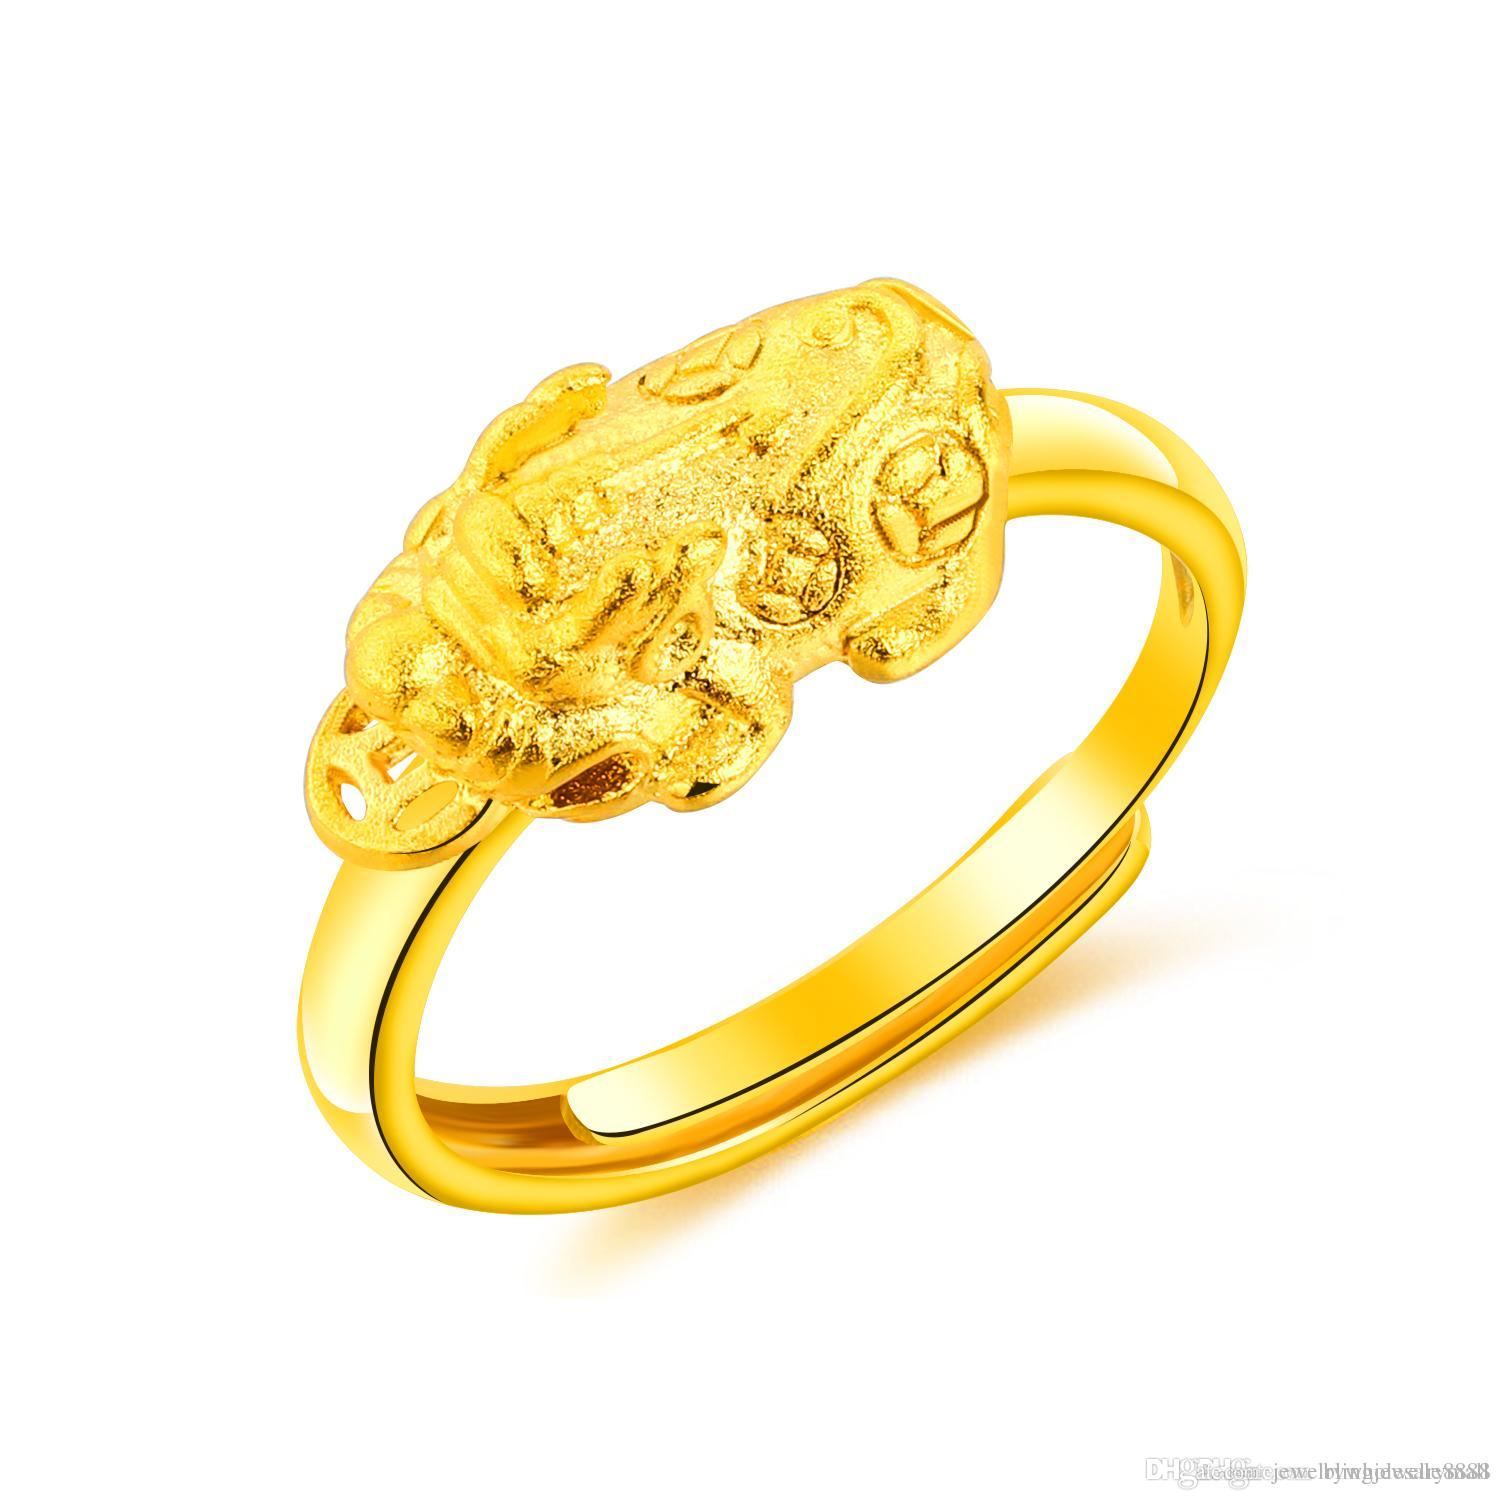 alainna jewellery from rings jewellers ring asia grt gold the floral july singapore at